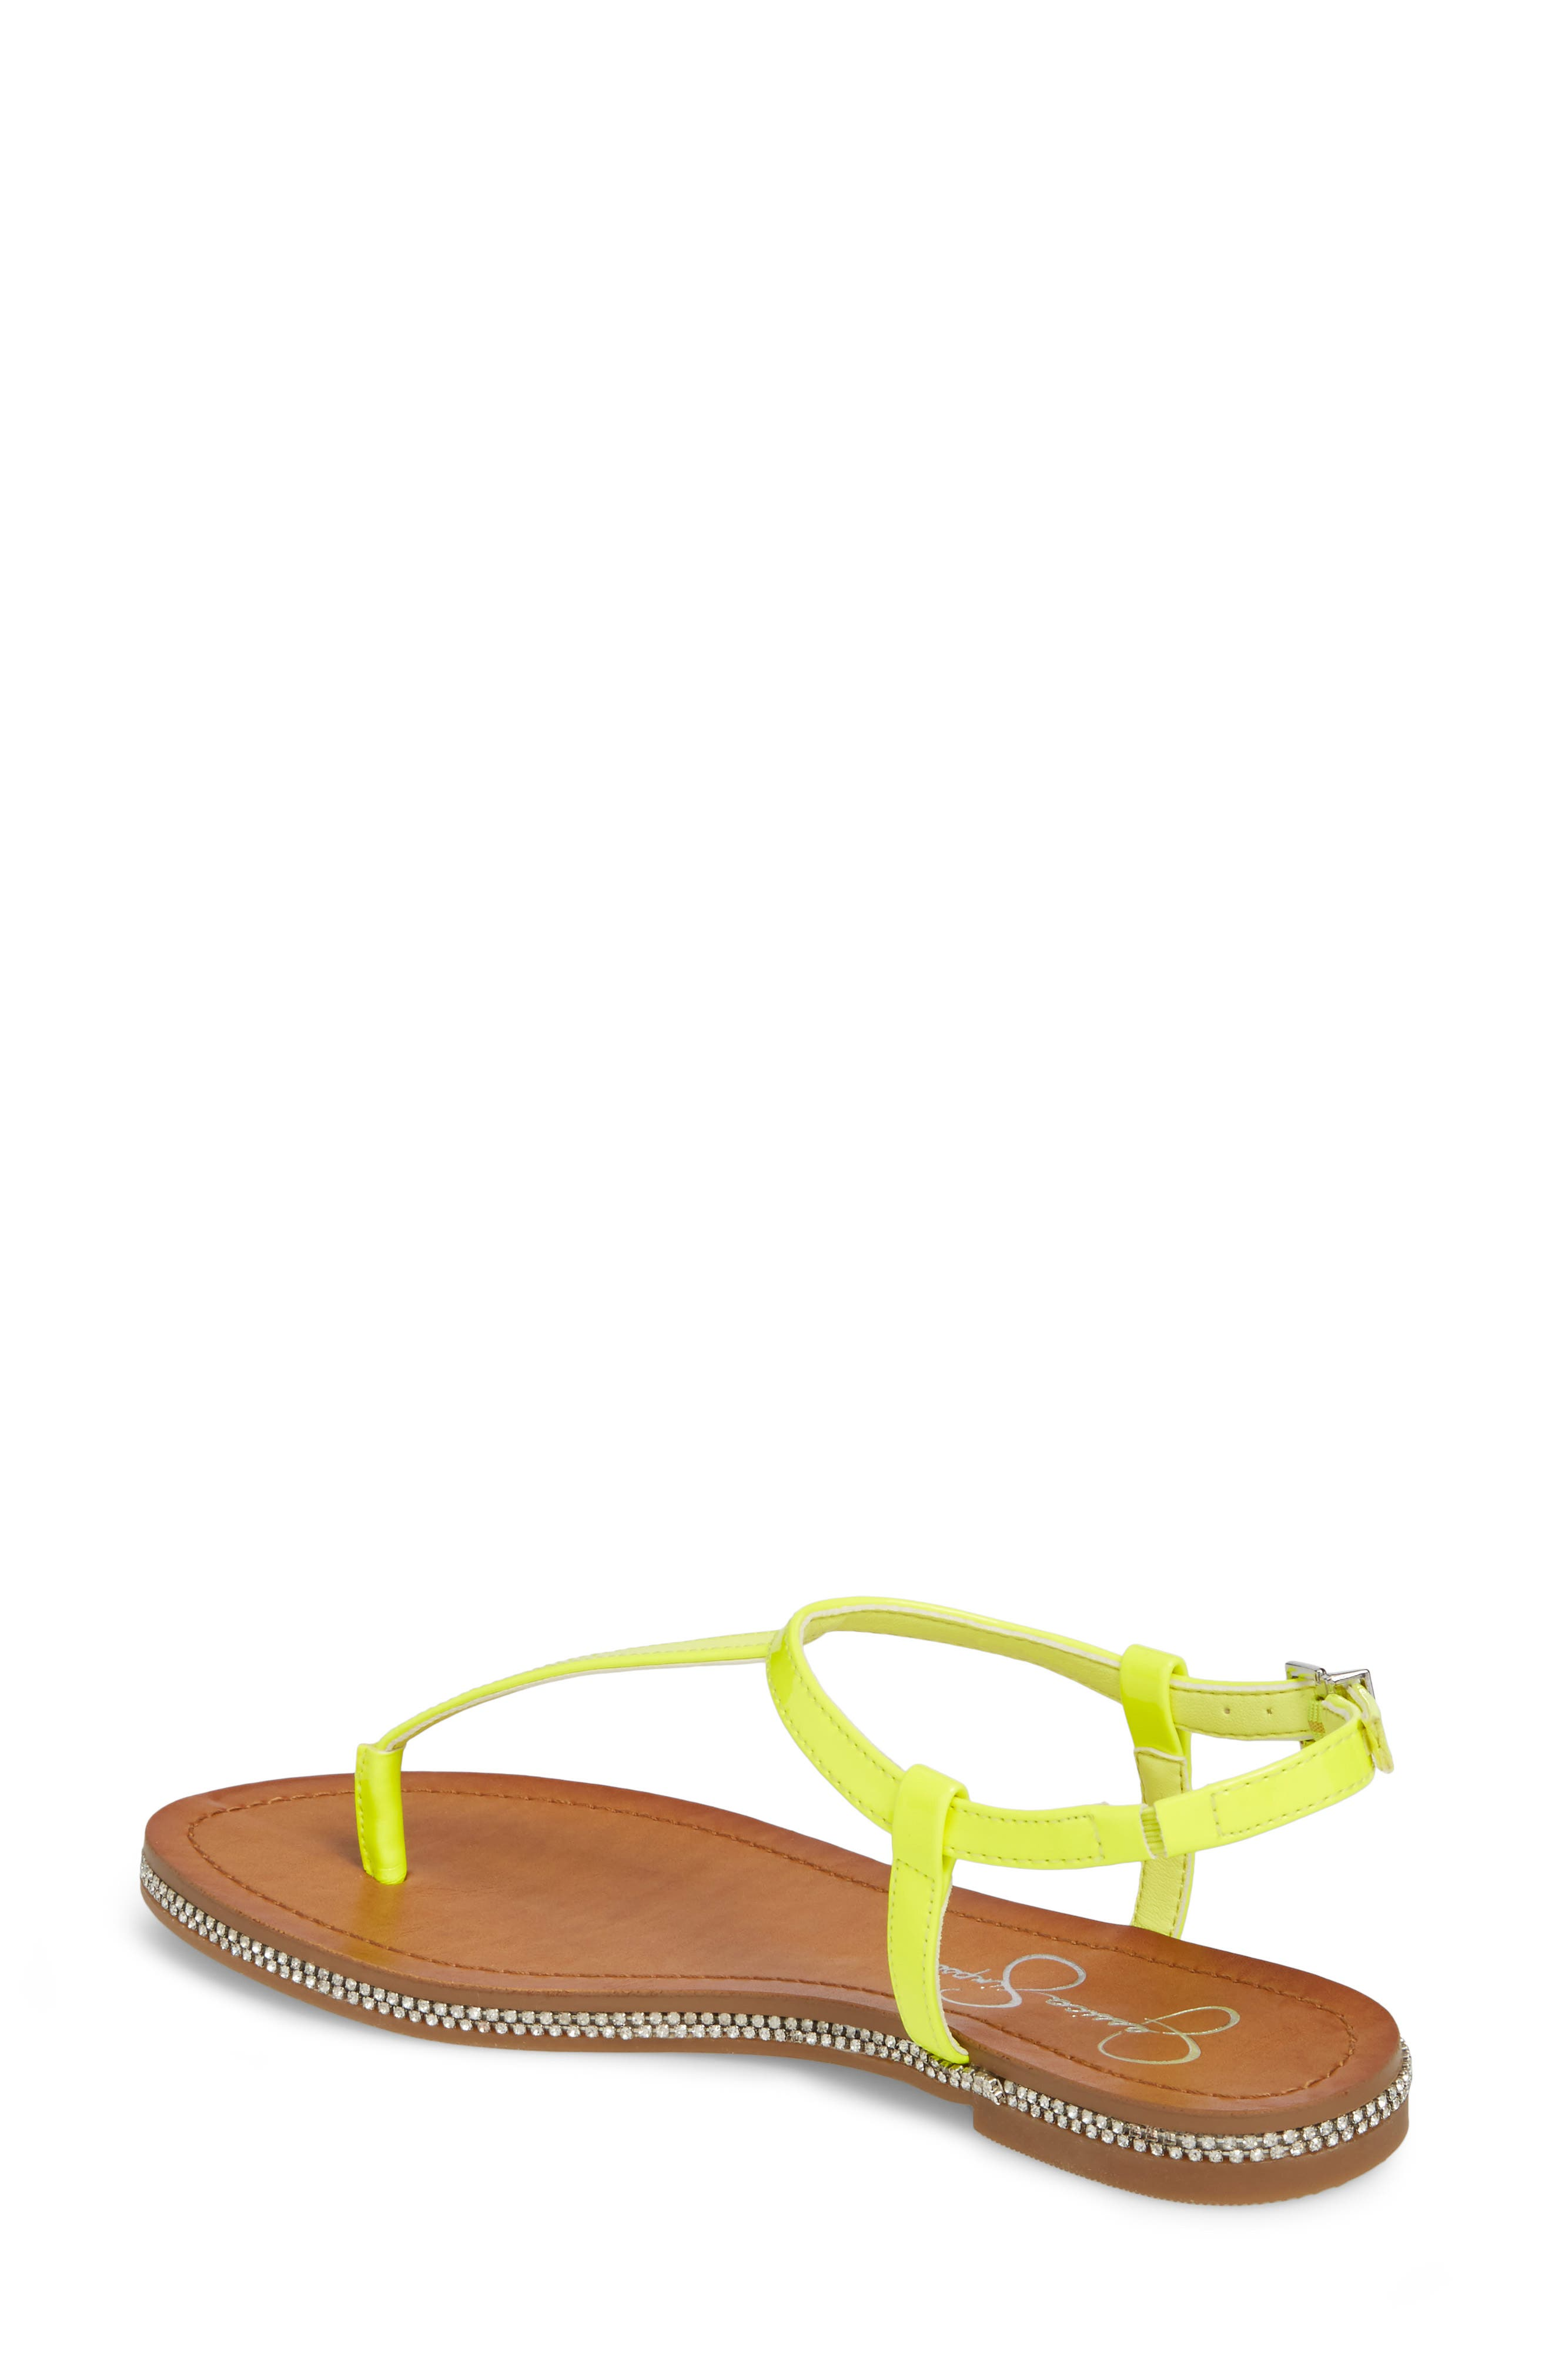 Brimah Sandal,                             Alternate thumbnail 2, color,                             Yellow Shock